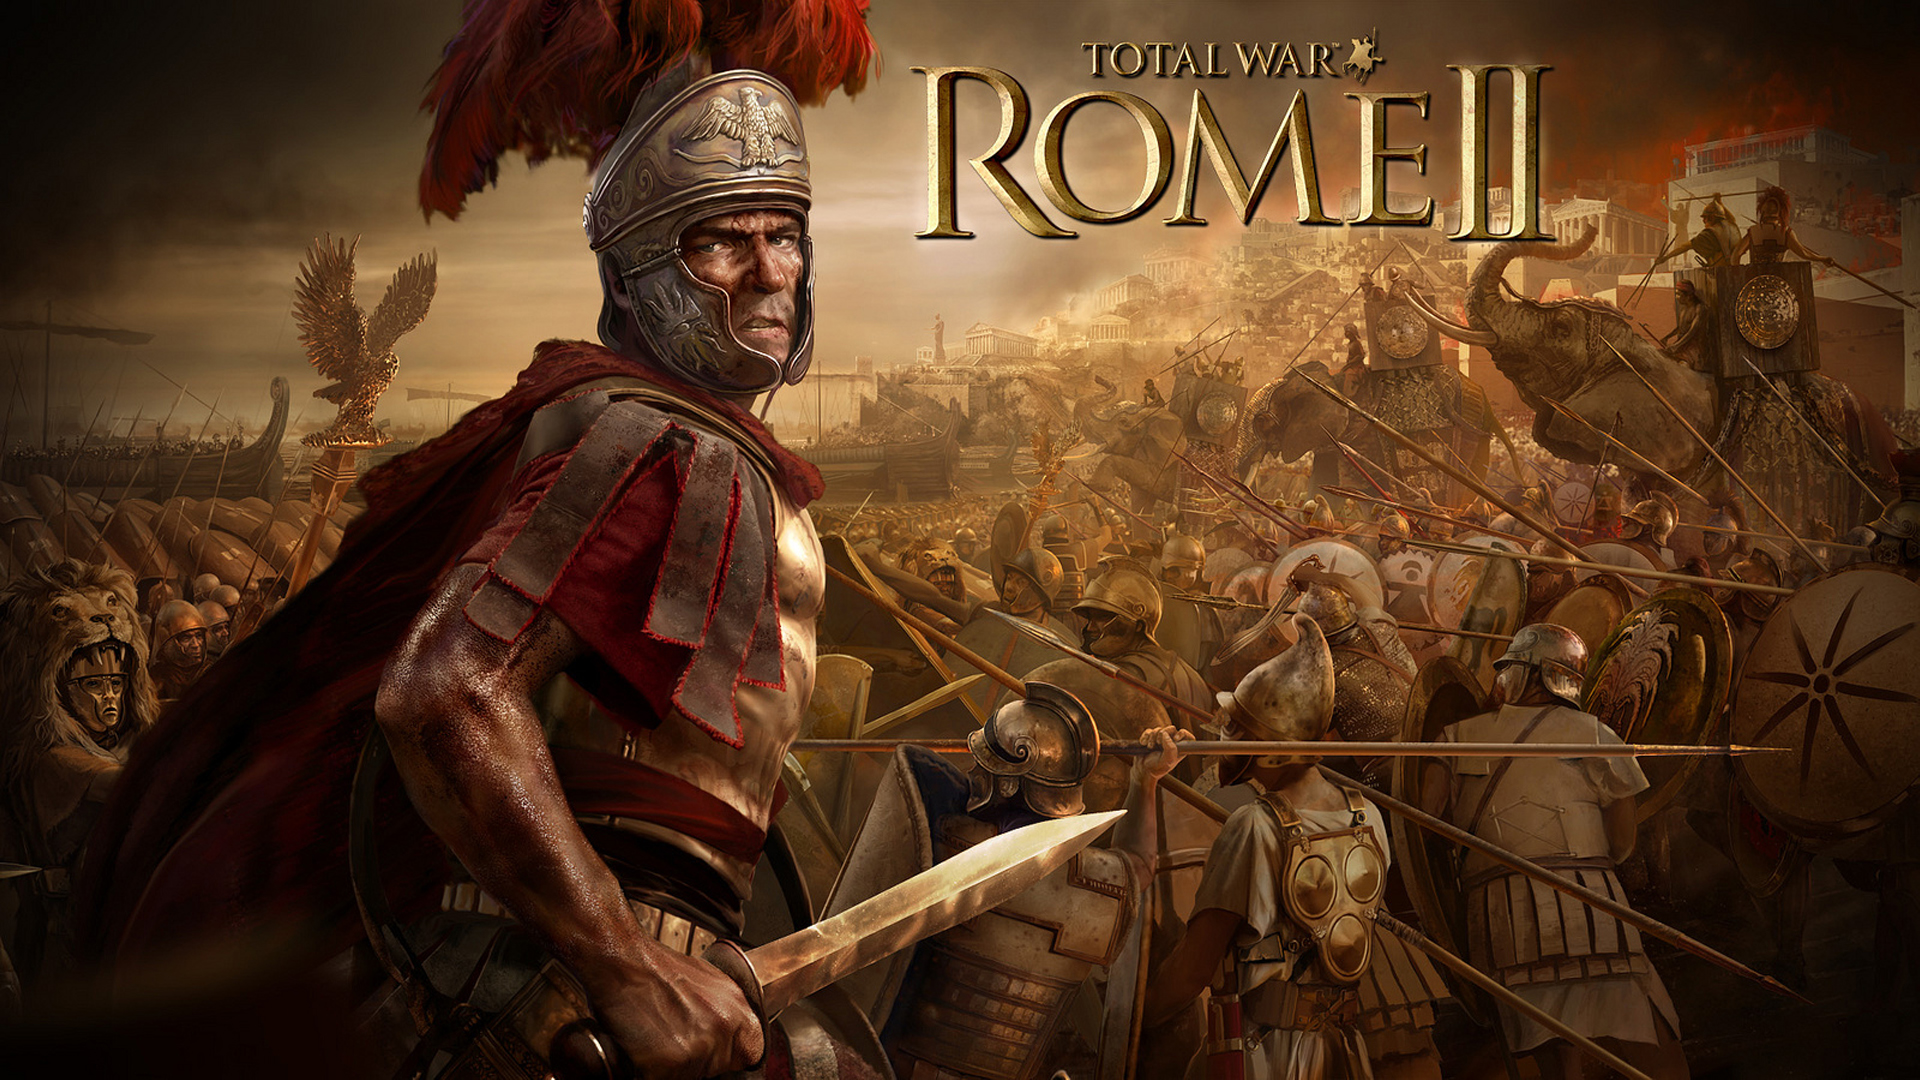 49 Rome 2 Total War Wallpaper On Wallpapersafari